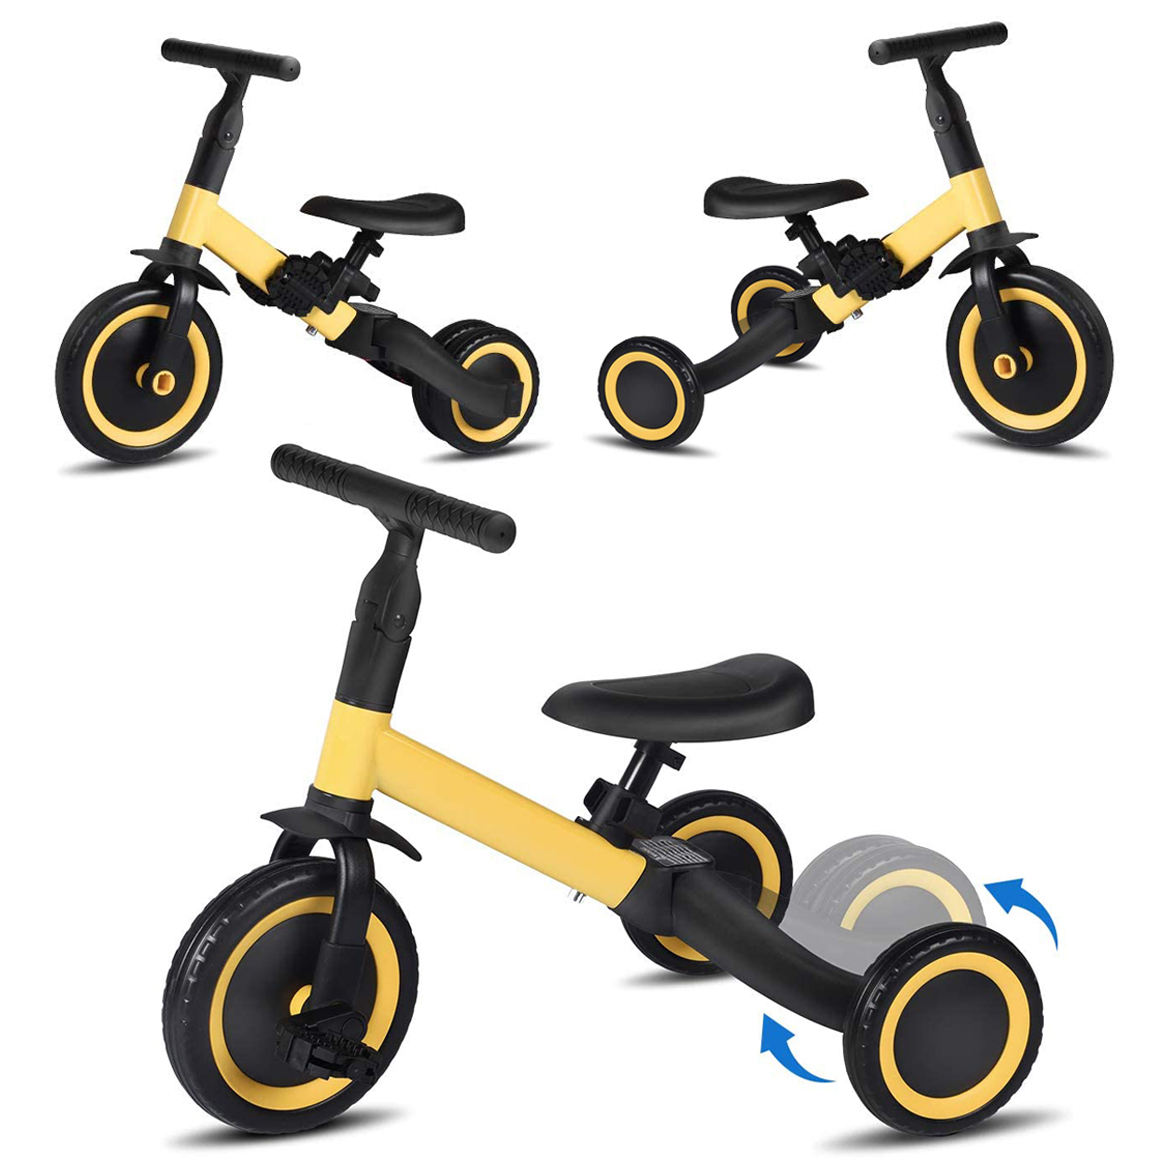 1-3-5 years multifunction three-in-one kids balance bike children bicycle 3 wheel 3 in 1 kid tricycle trike